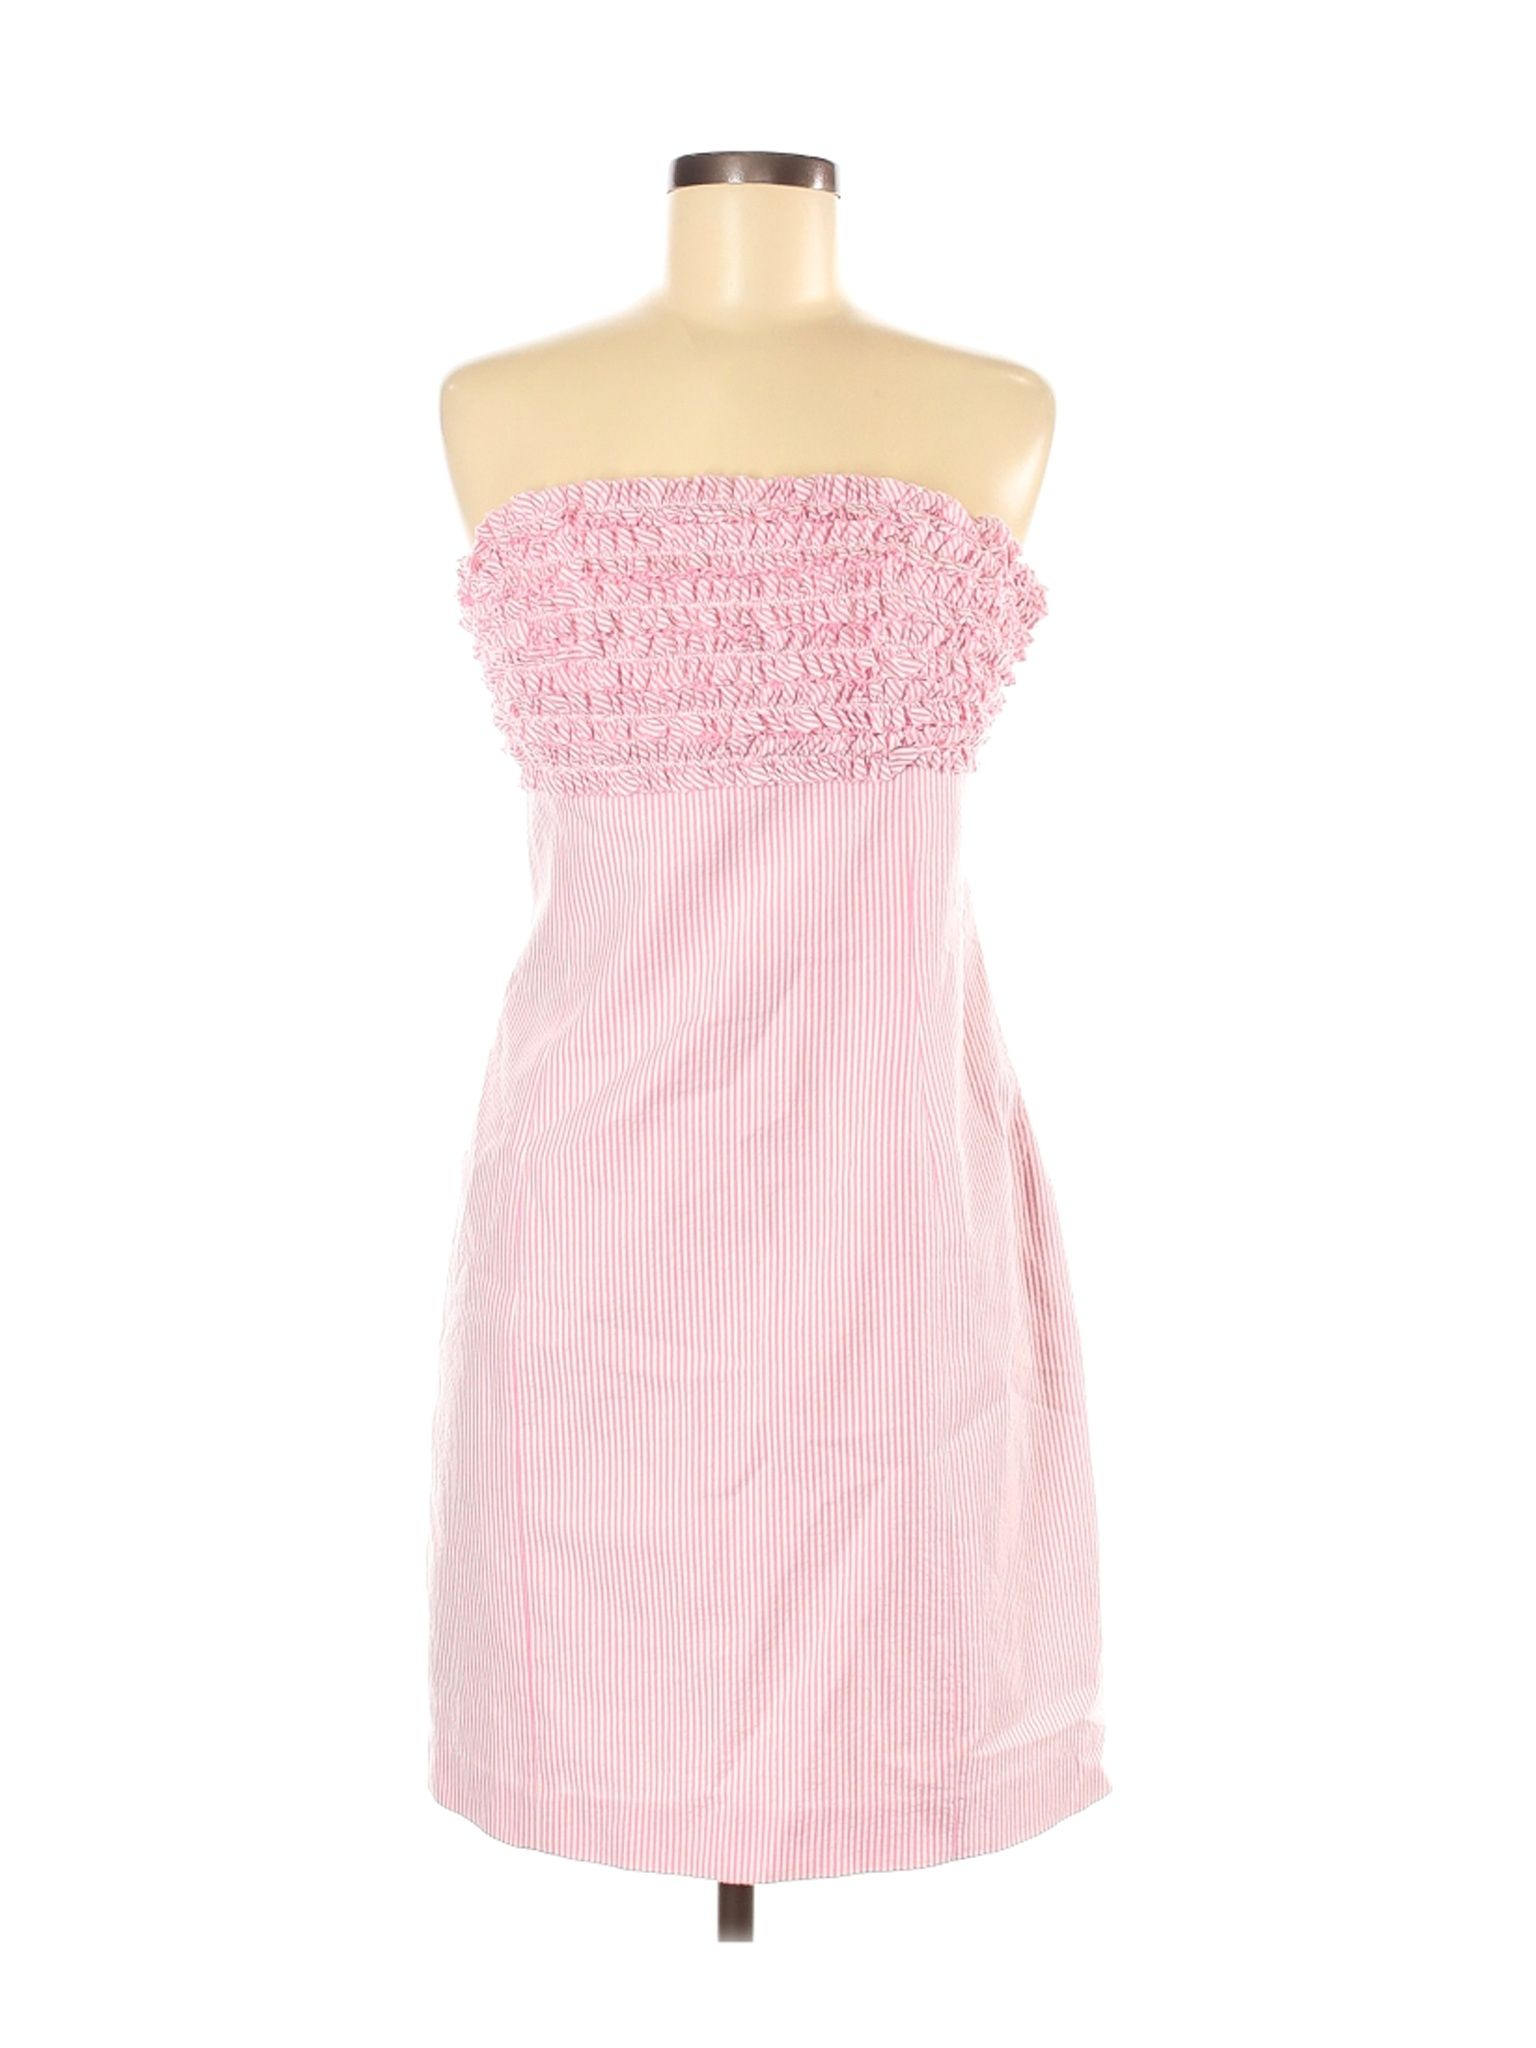 Lilly Pulitzer Pre Owned Lilly Pulitzer Women S Size 8 Casual Dress Walmart Com In 2021 Casual Dress Dresses Solid Dress [ 2048 x 1536 Pixel ]